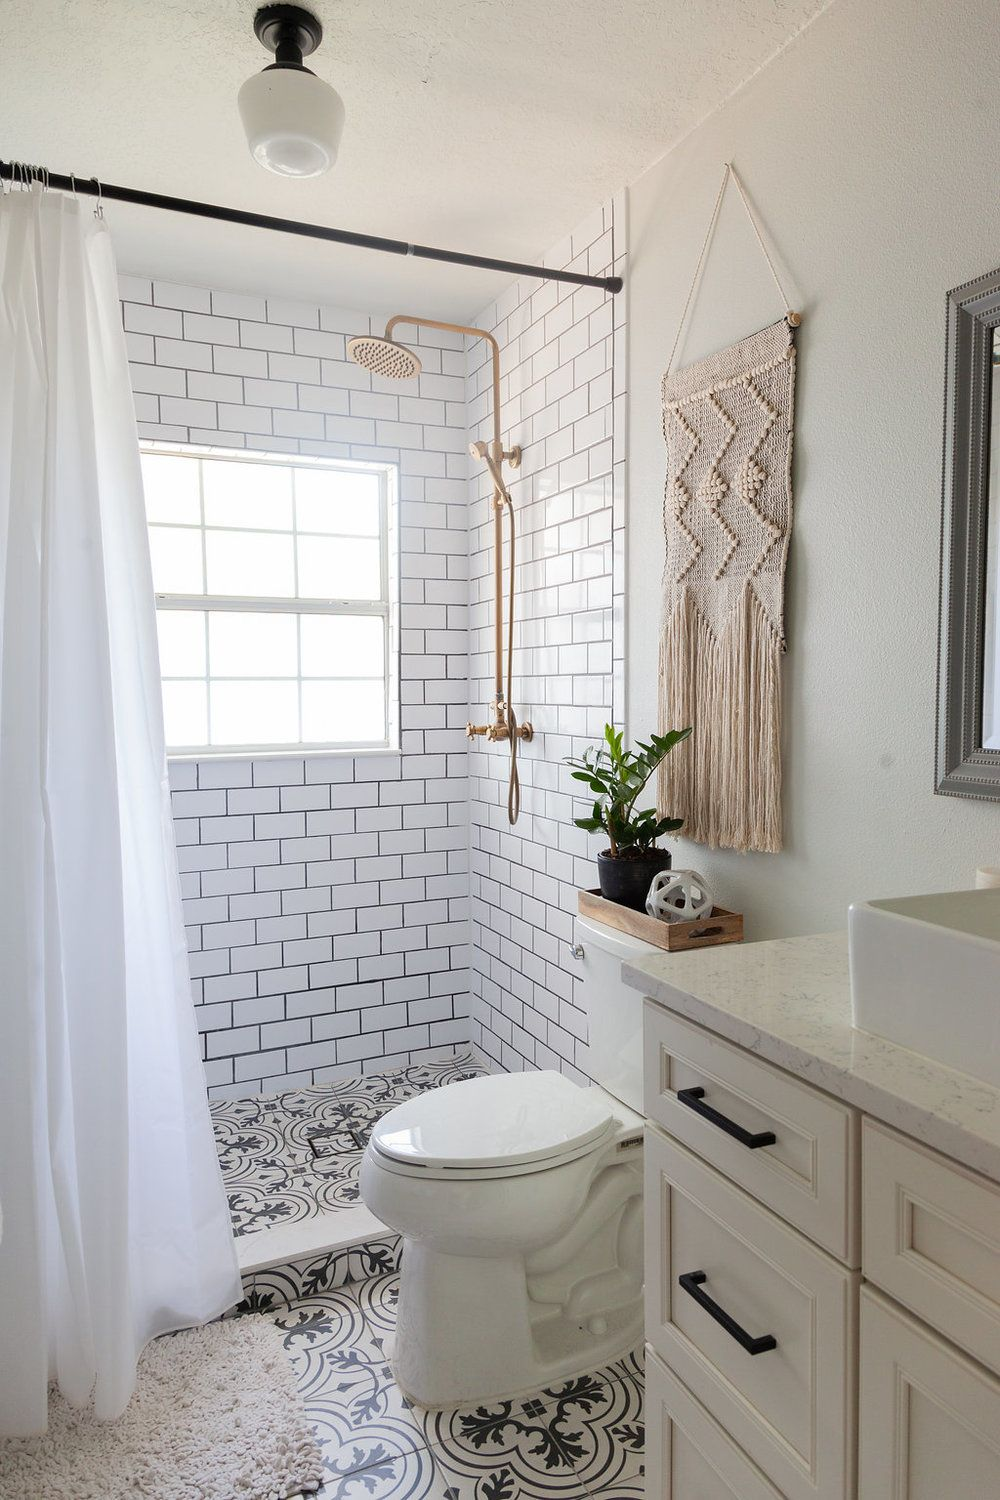 Diy Bathroom Remodel On A Budget And Thoughts On Renovating In Phases Diy Bathroom Remodel Bathrooms Remodel Budget Bathroom Remodel